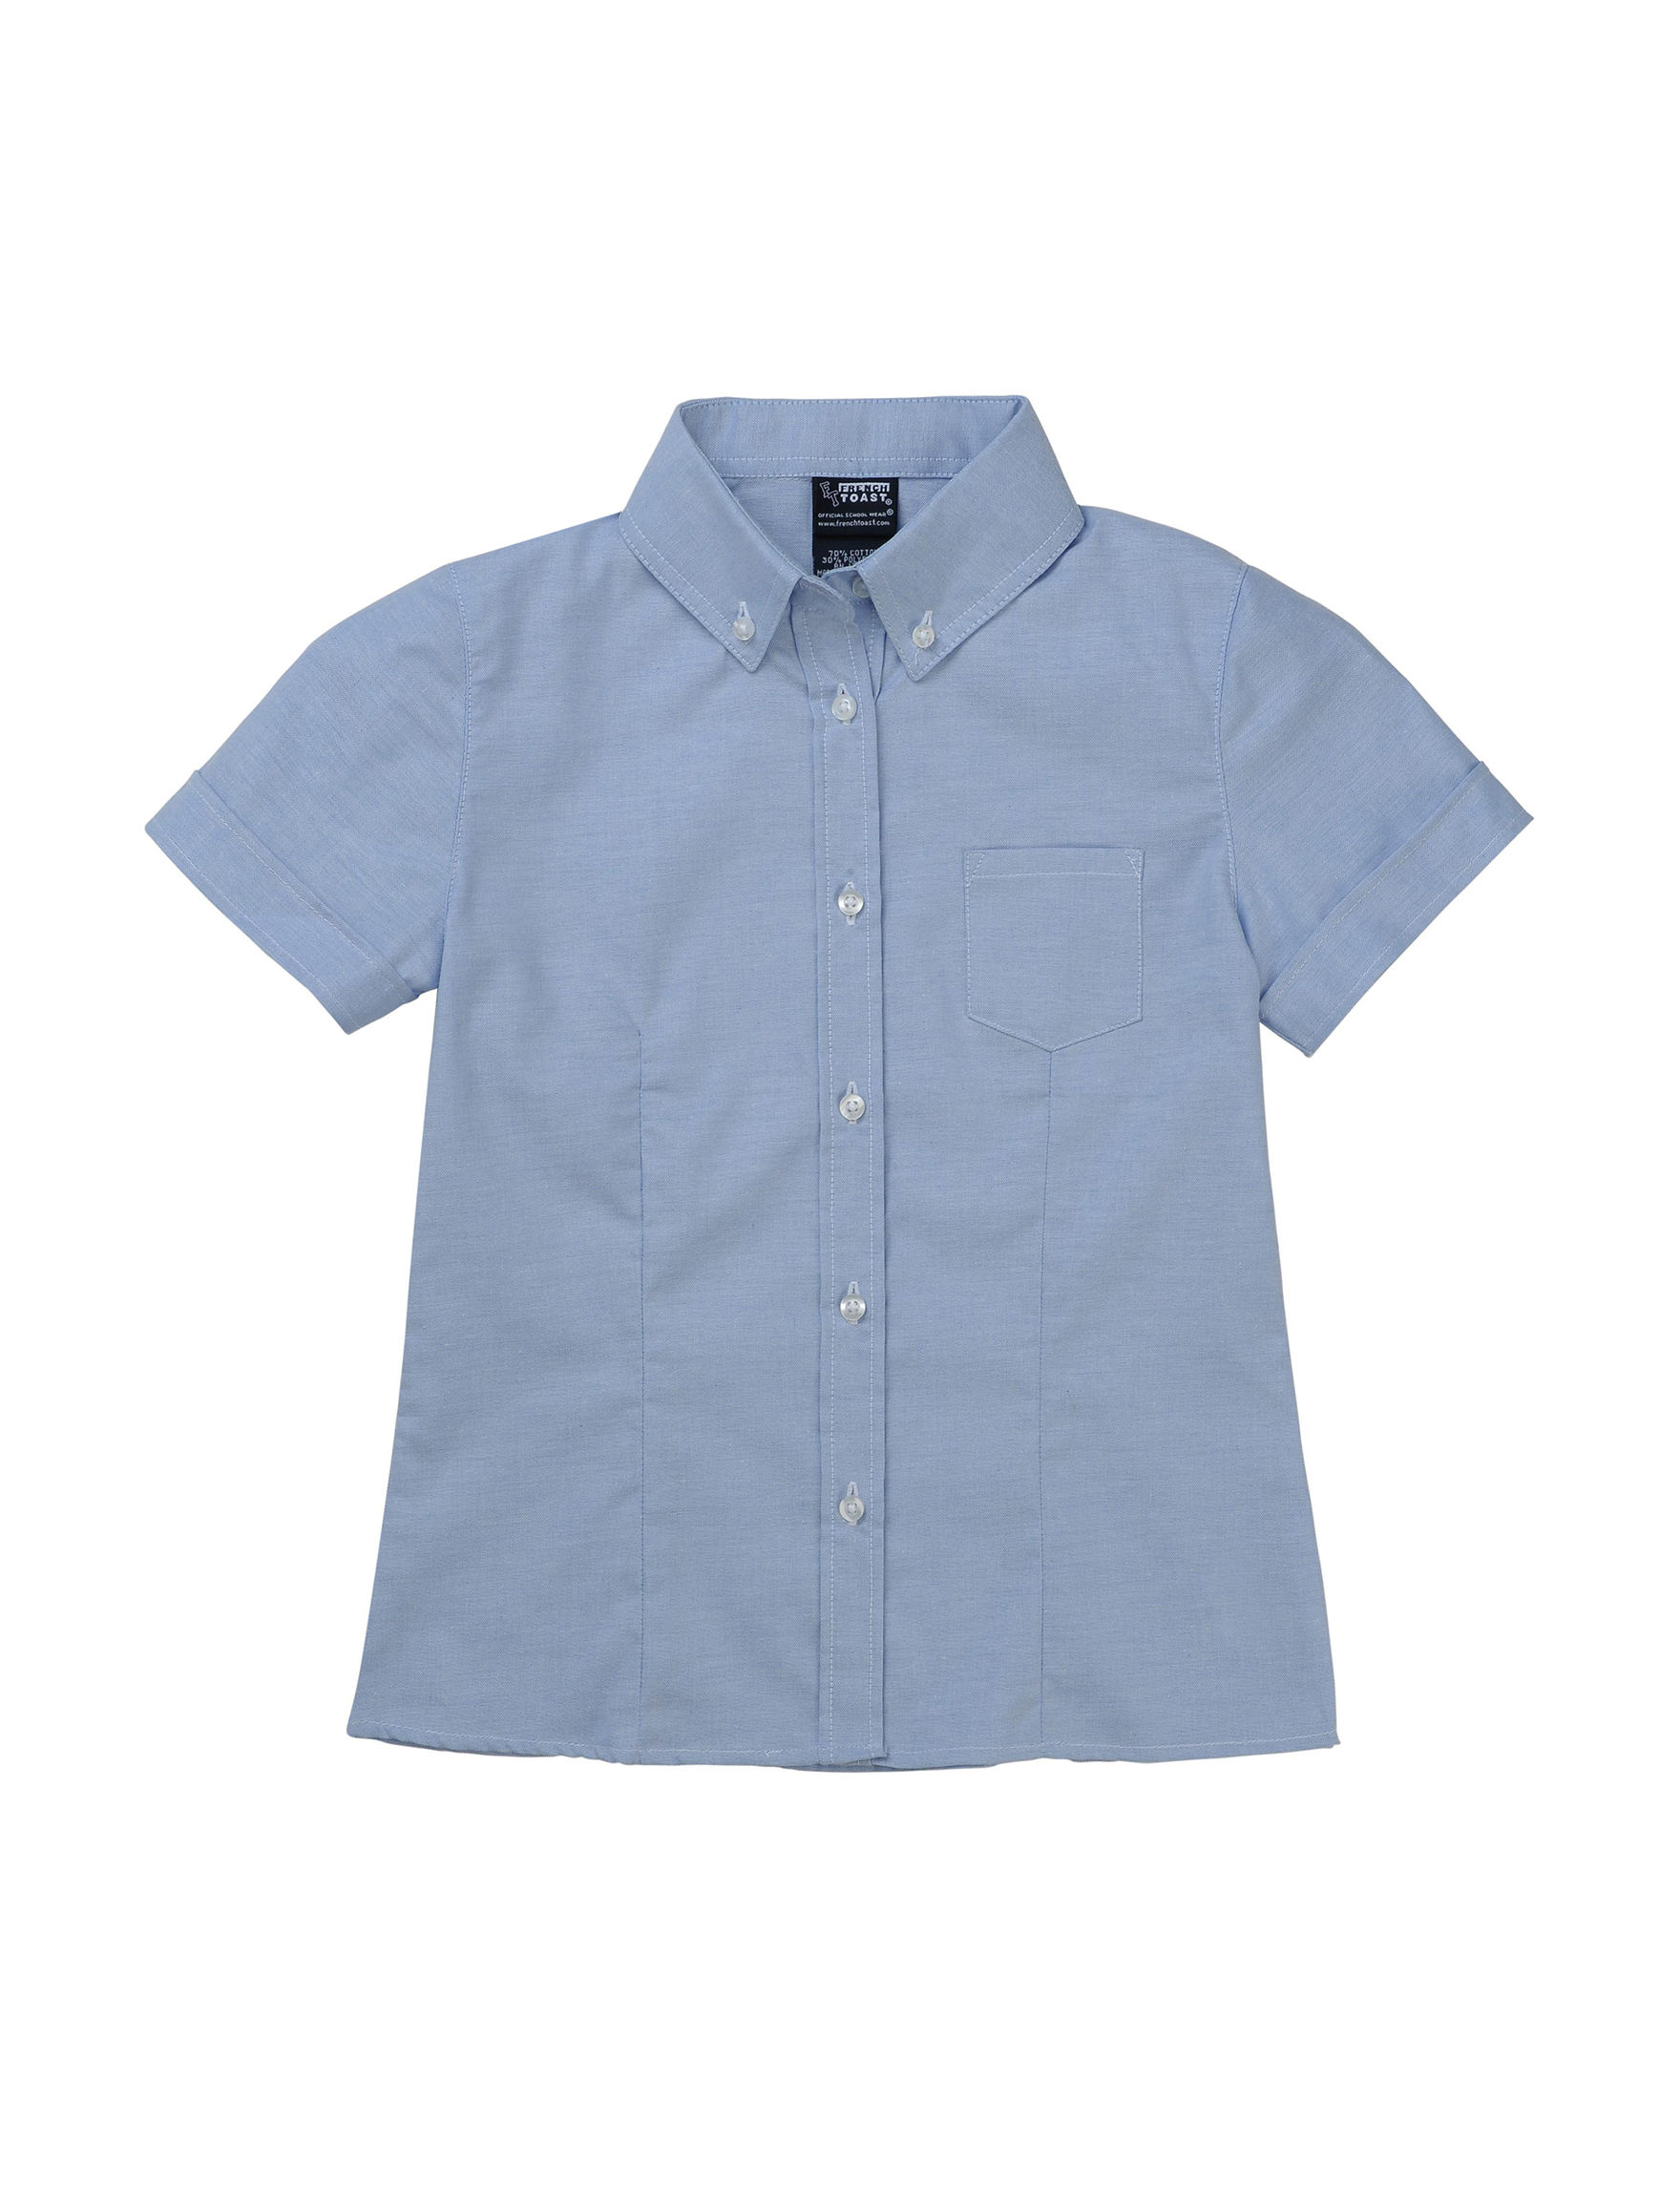 French Toast Blue Shirts & Blouses